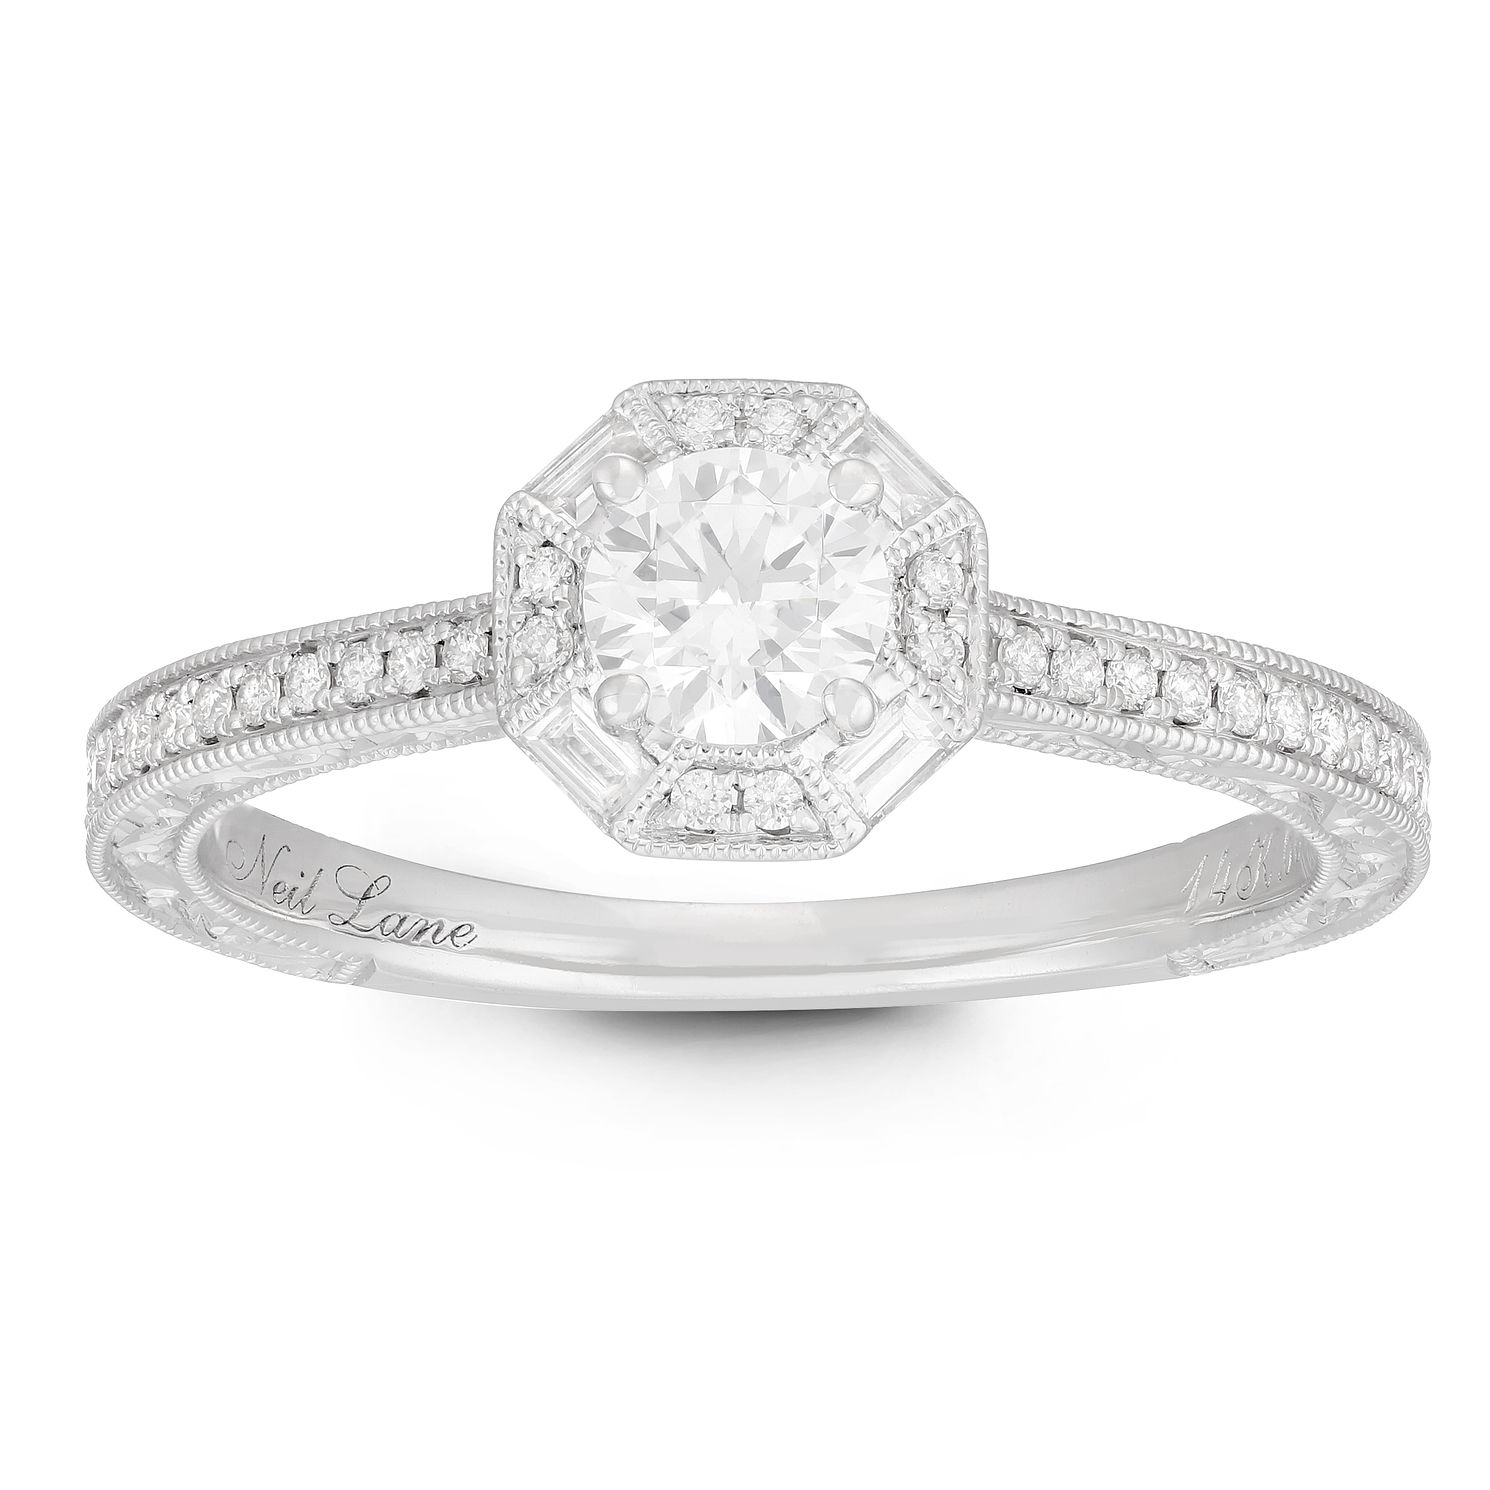 Neil Lane Designs 14ct White Gold 3/5ct Diamond Halo Ring - Product number 2534290